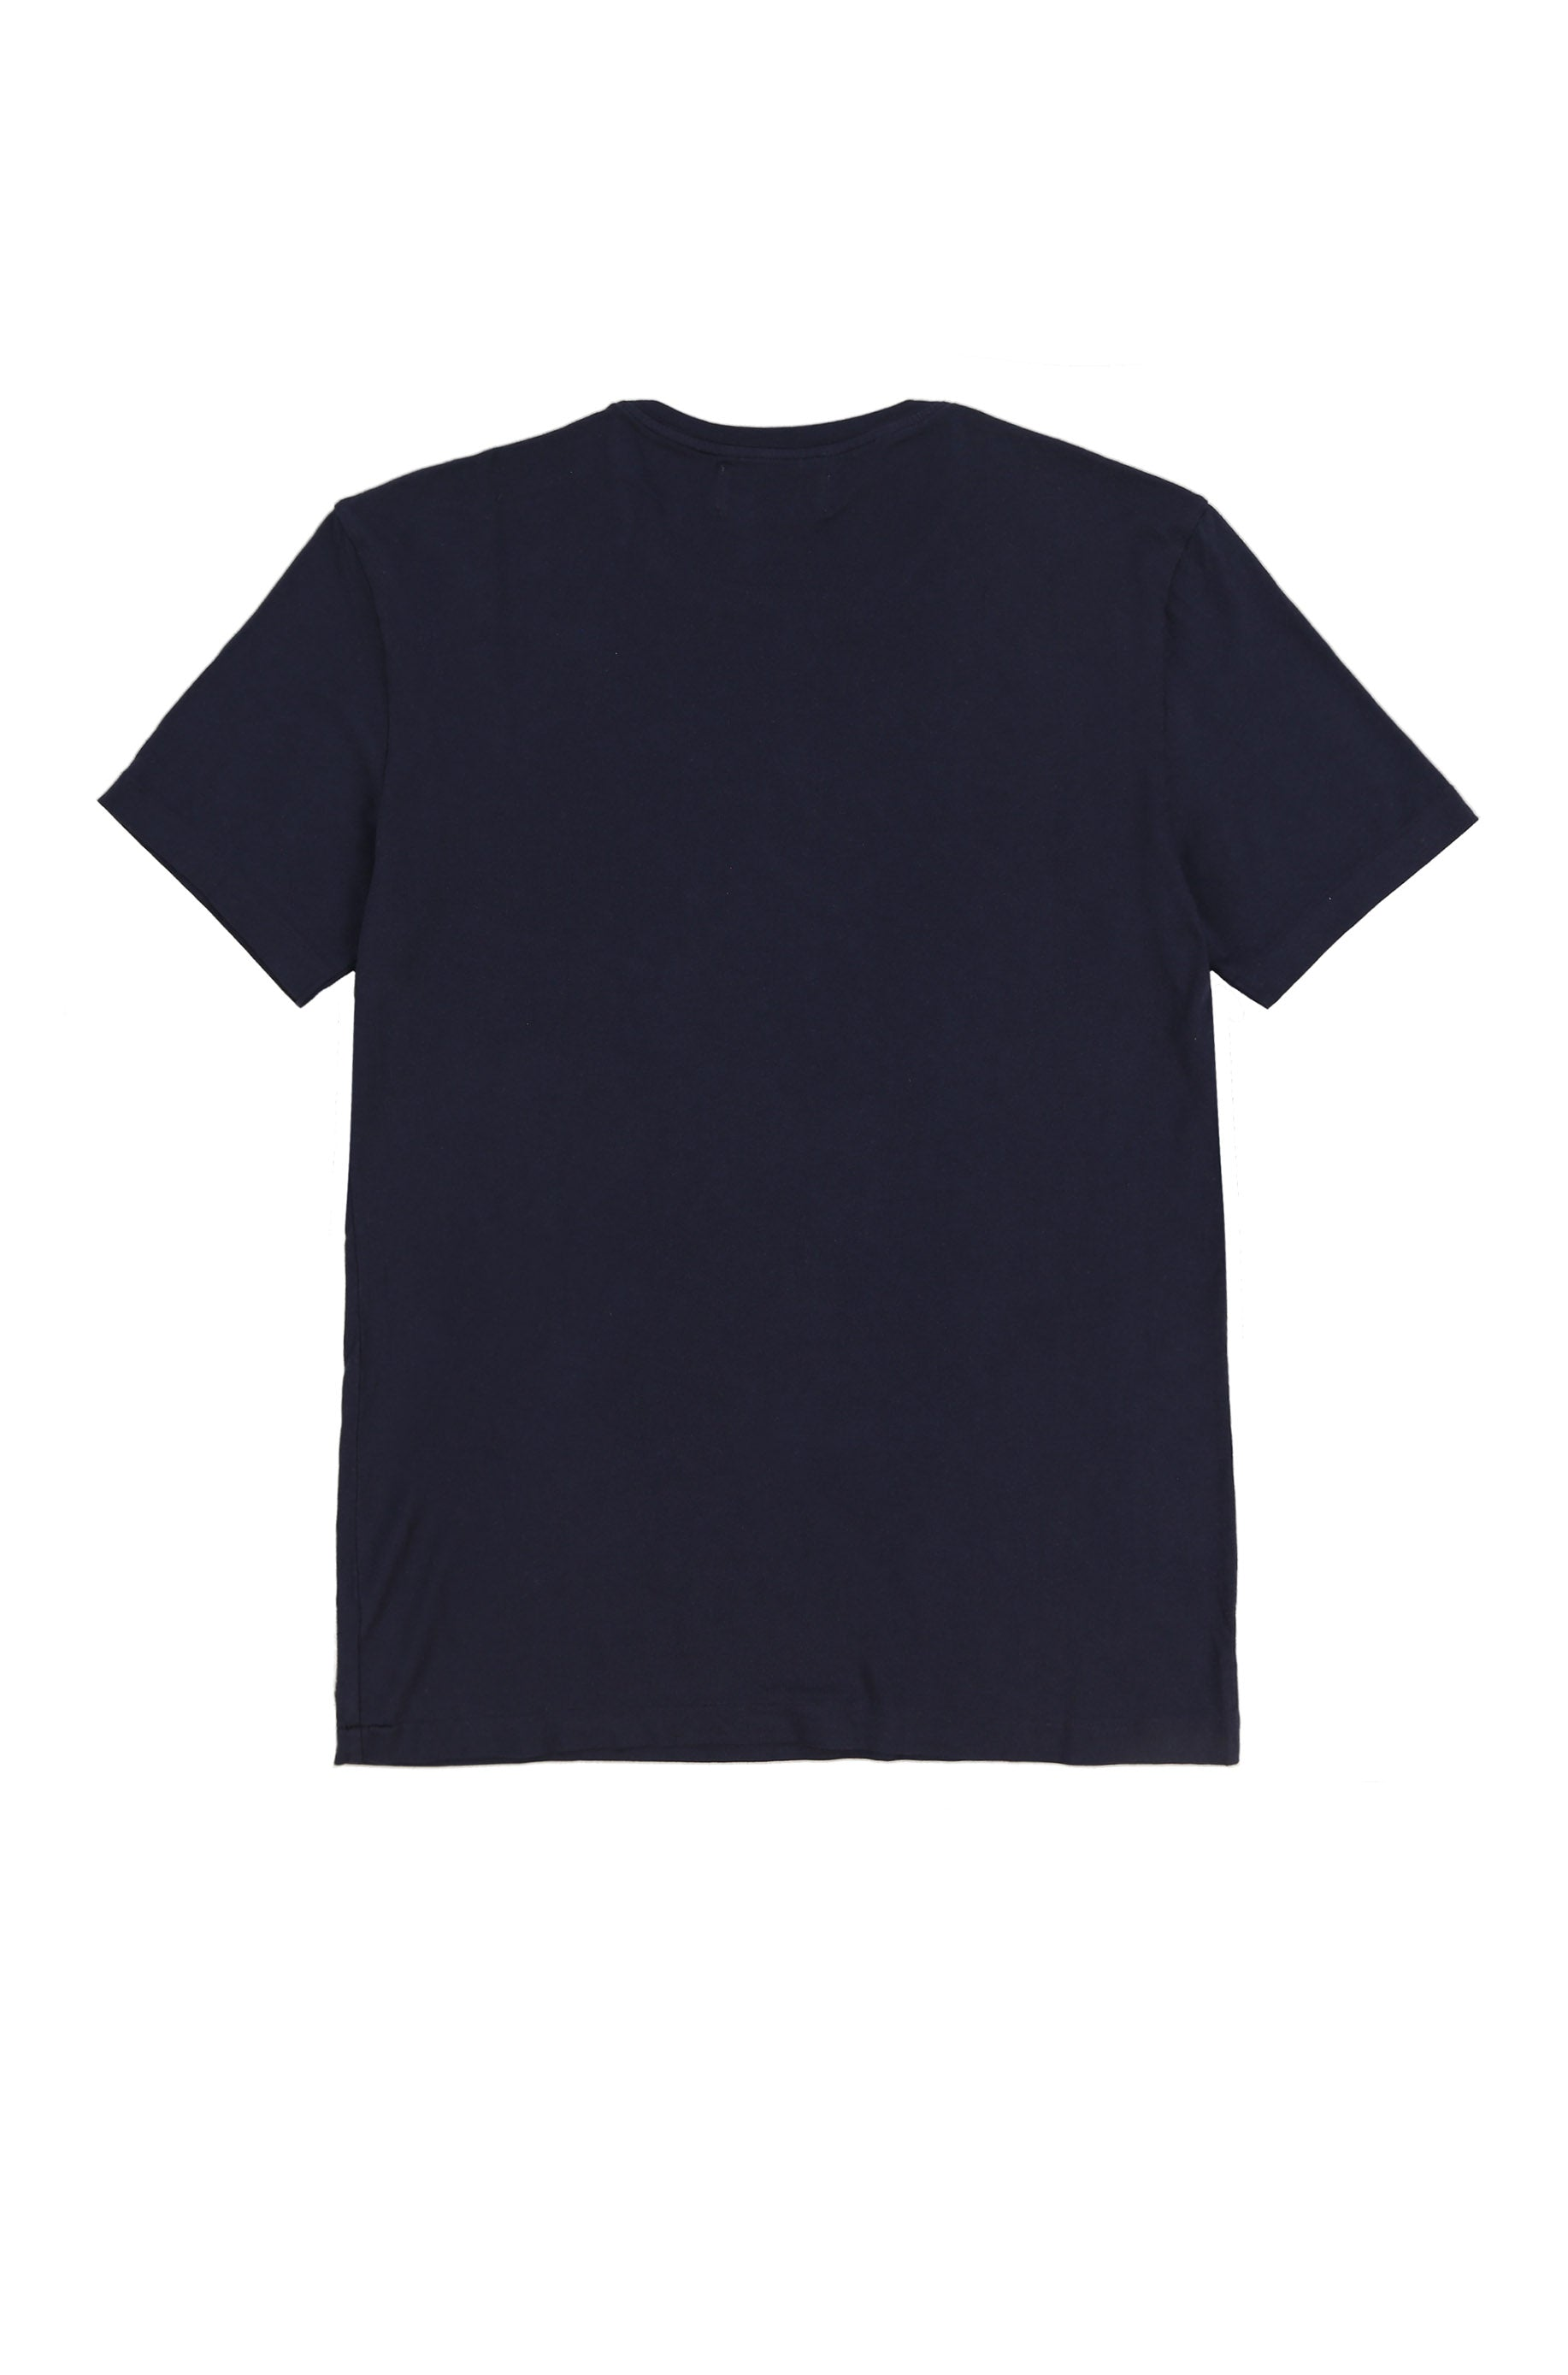 OYSTER NECK LAYERING TEE (NAVY)